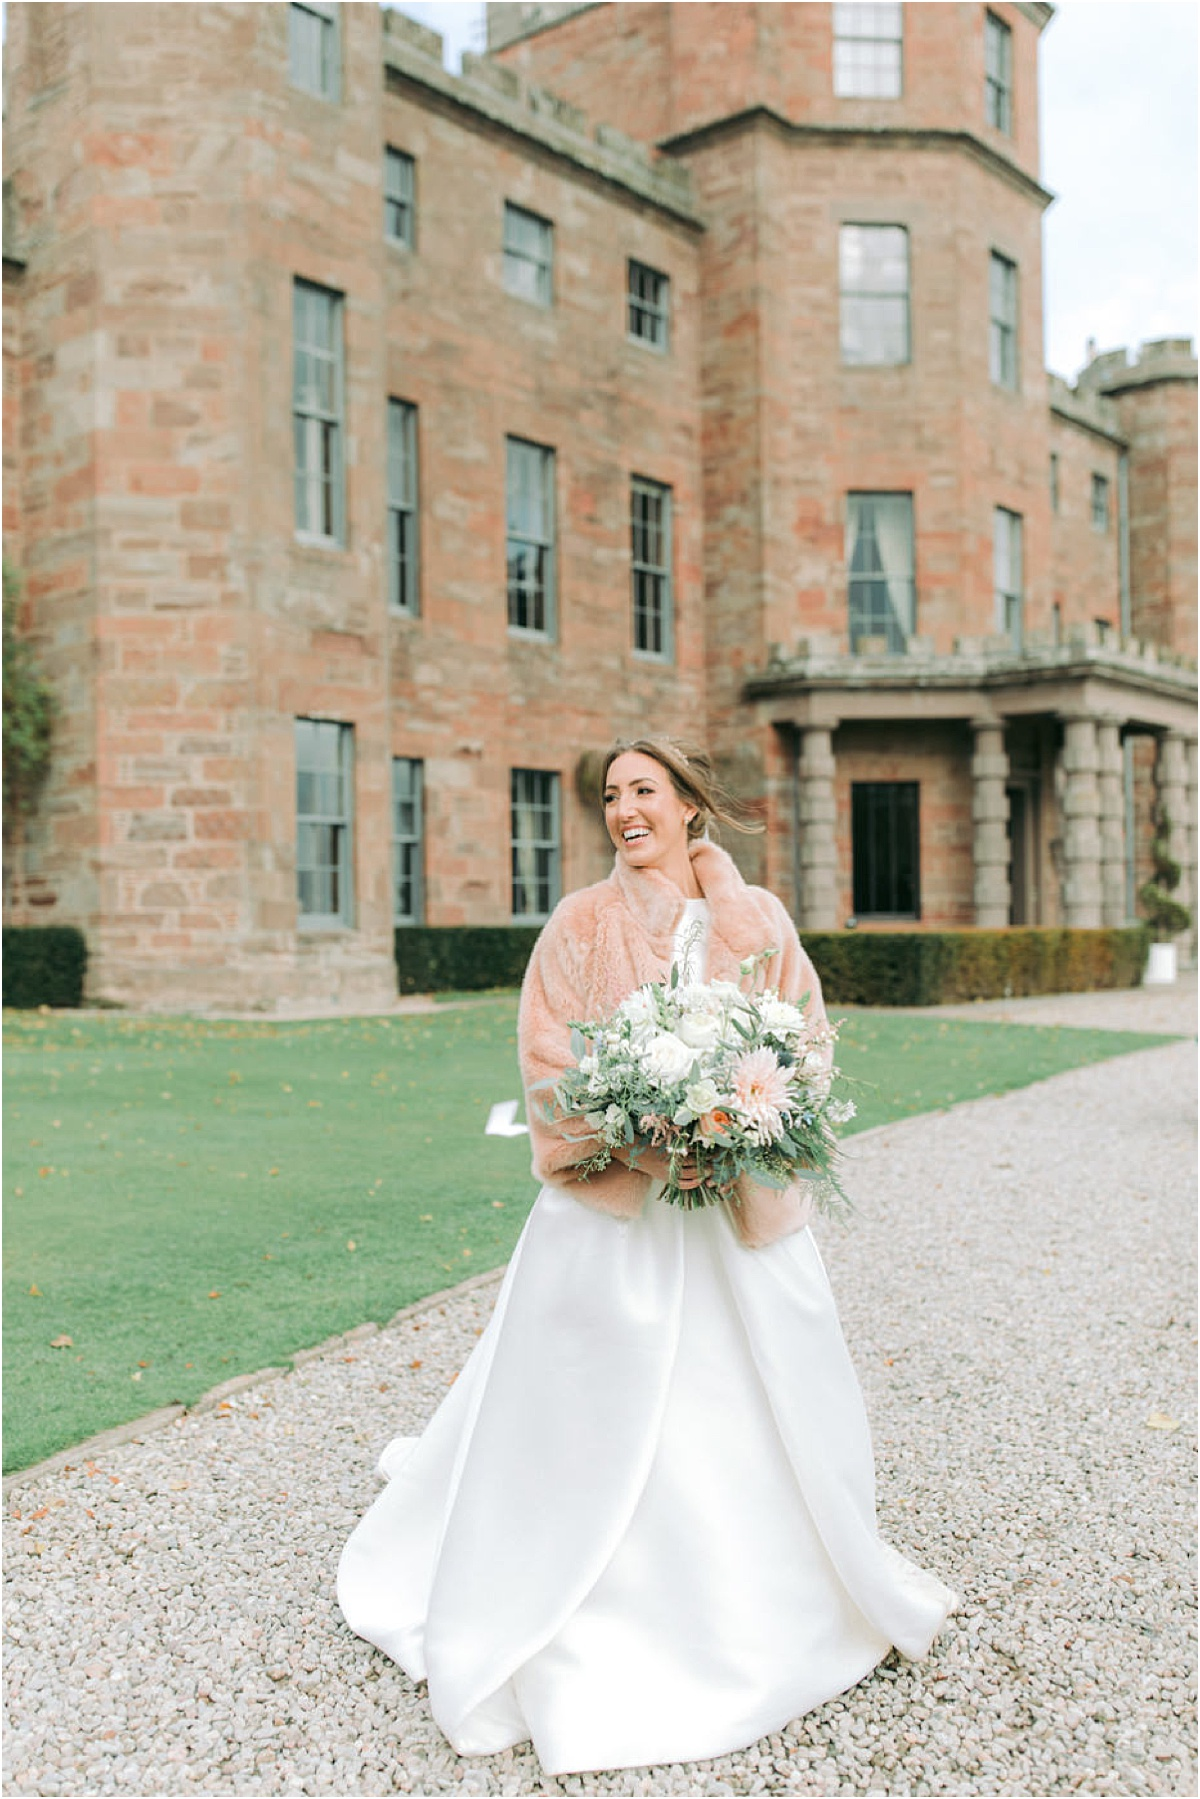 Fasque Castle wedding,Fine Art Wedding Photographers,The Gibsons,light and airy wedding photographers glasgow,natural wedding photographers,romantic photographers Scotland,two wedding photographers scotland,